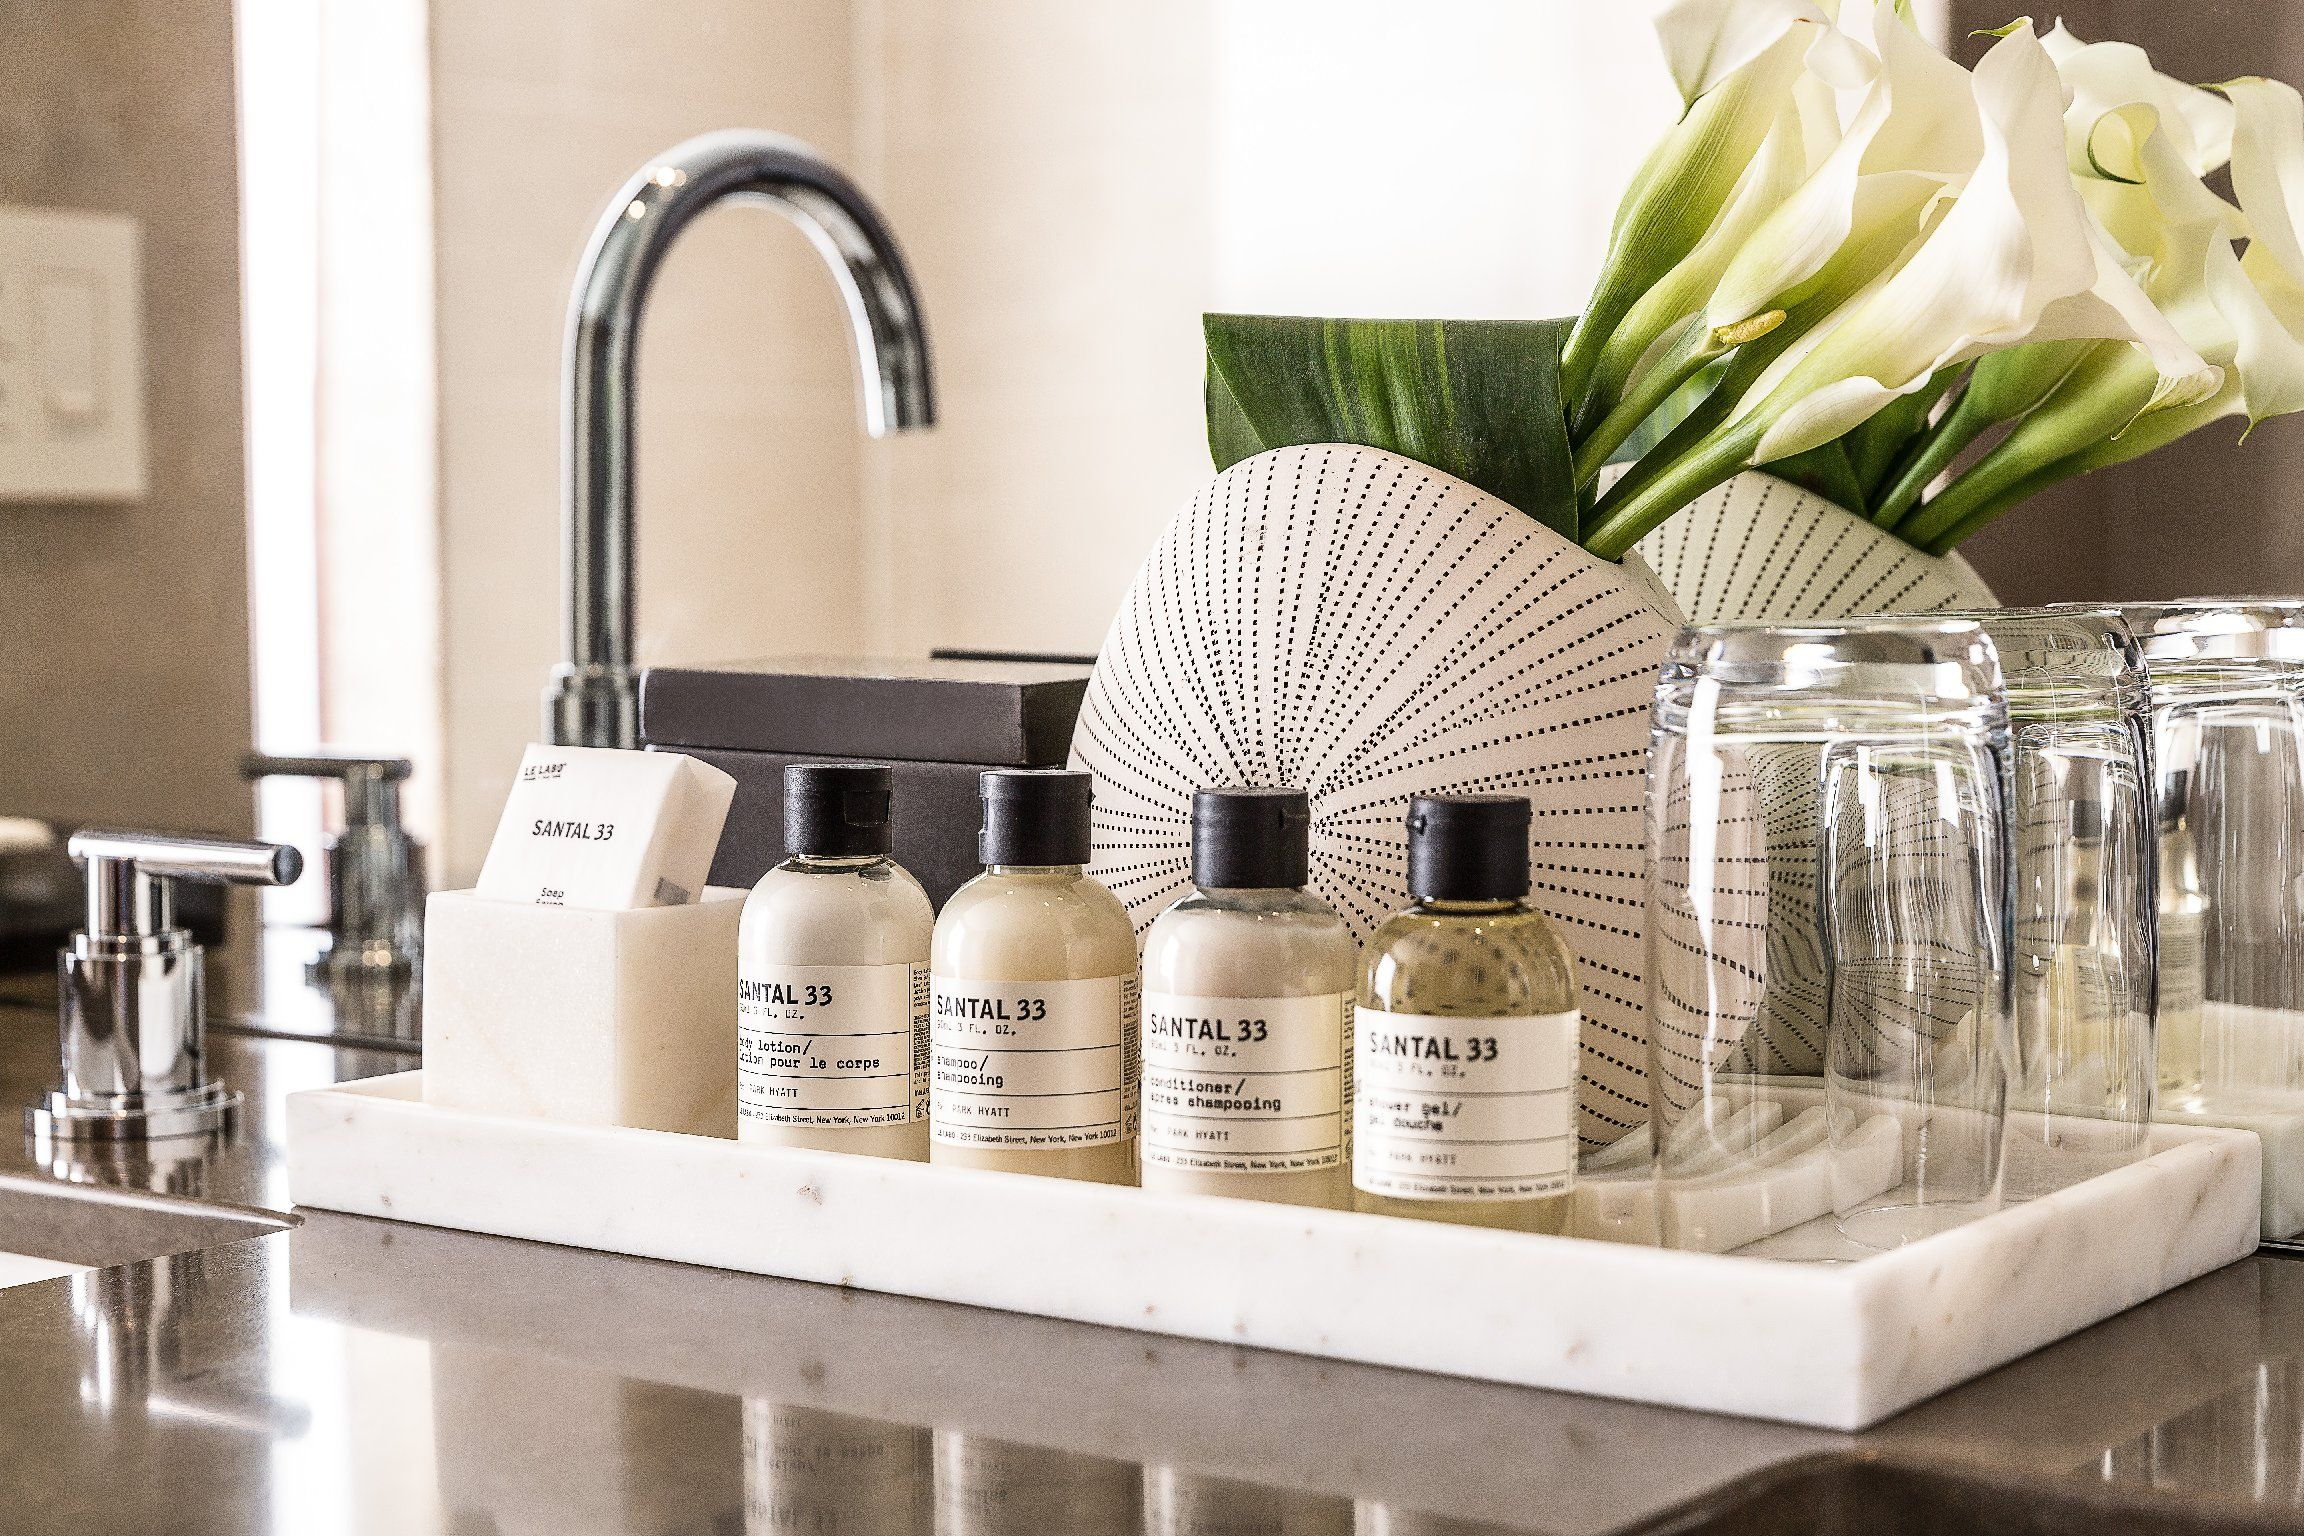 Luxury Hotel Bathroom Amenities